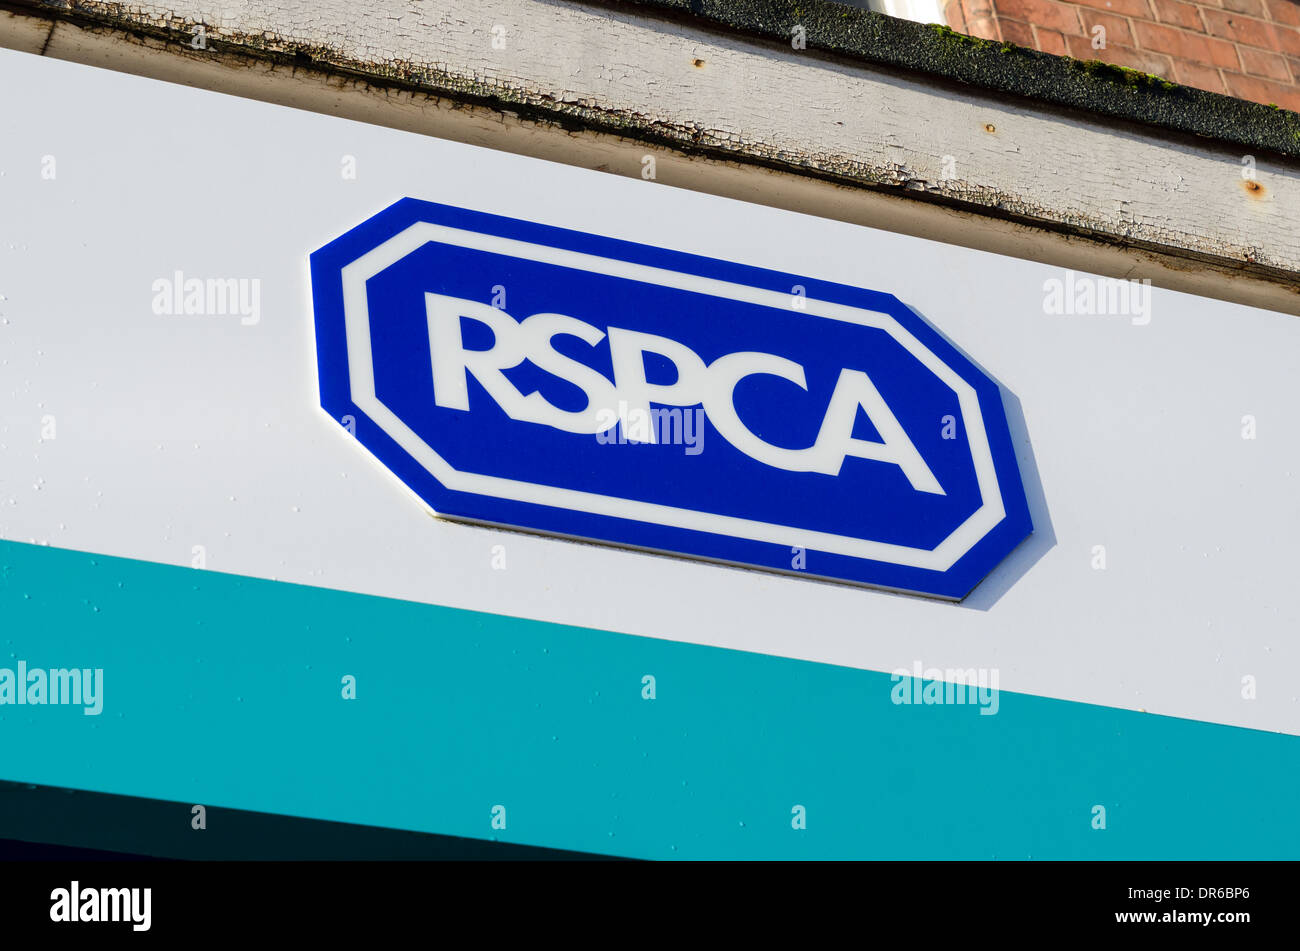 RSPCA charity shop sign - Stock Image